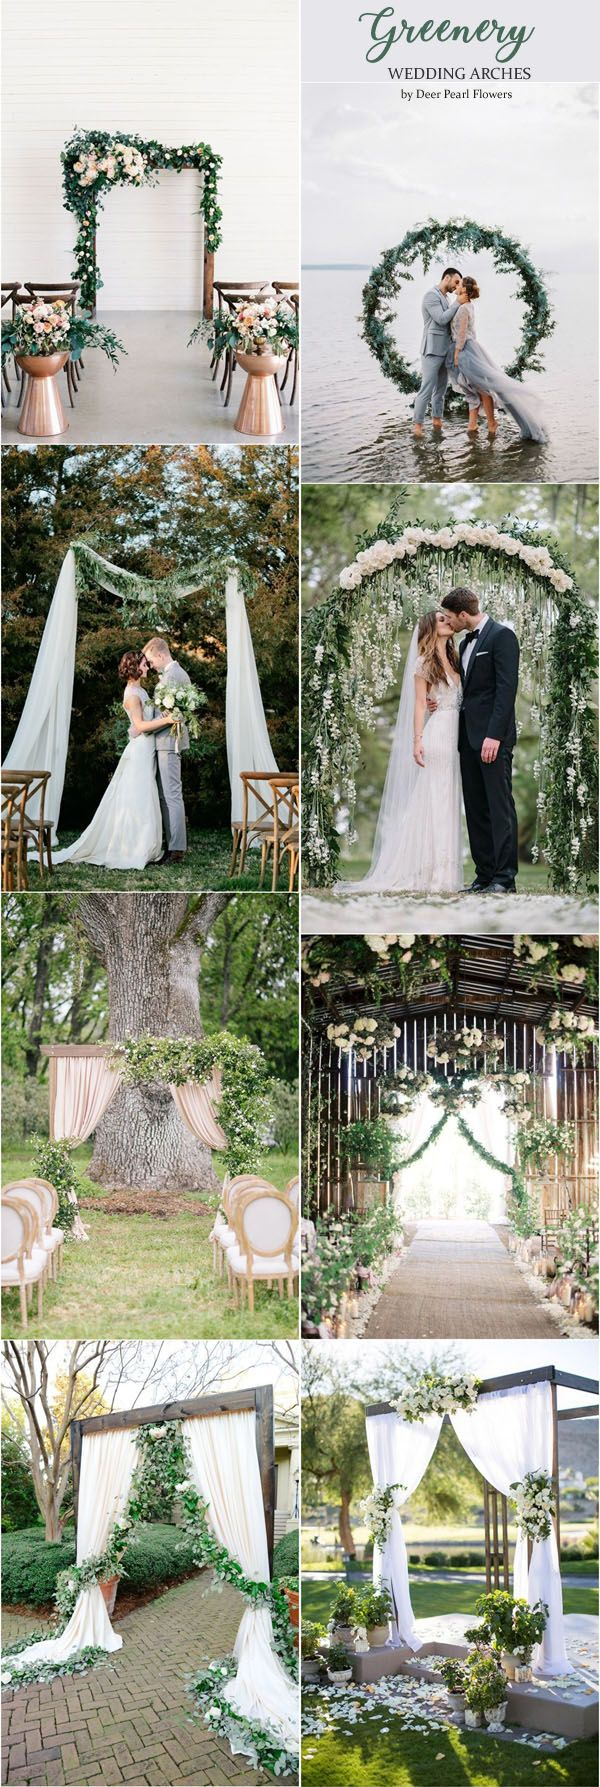 arch decorations for wedding ceremony 25 best ideas about outdoor wedding altars on 1360